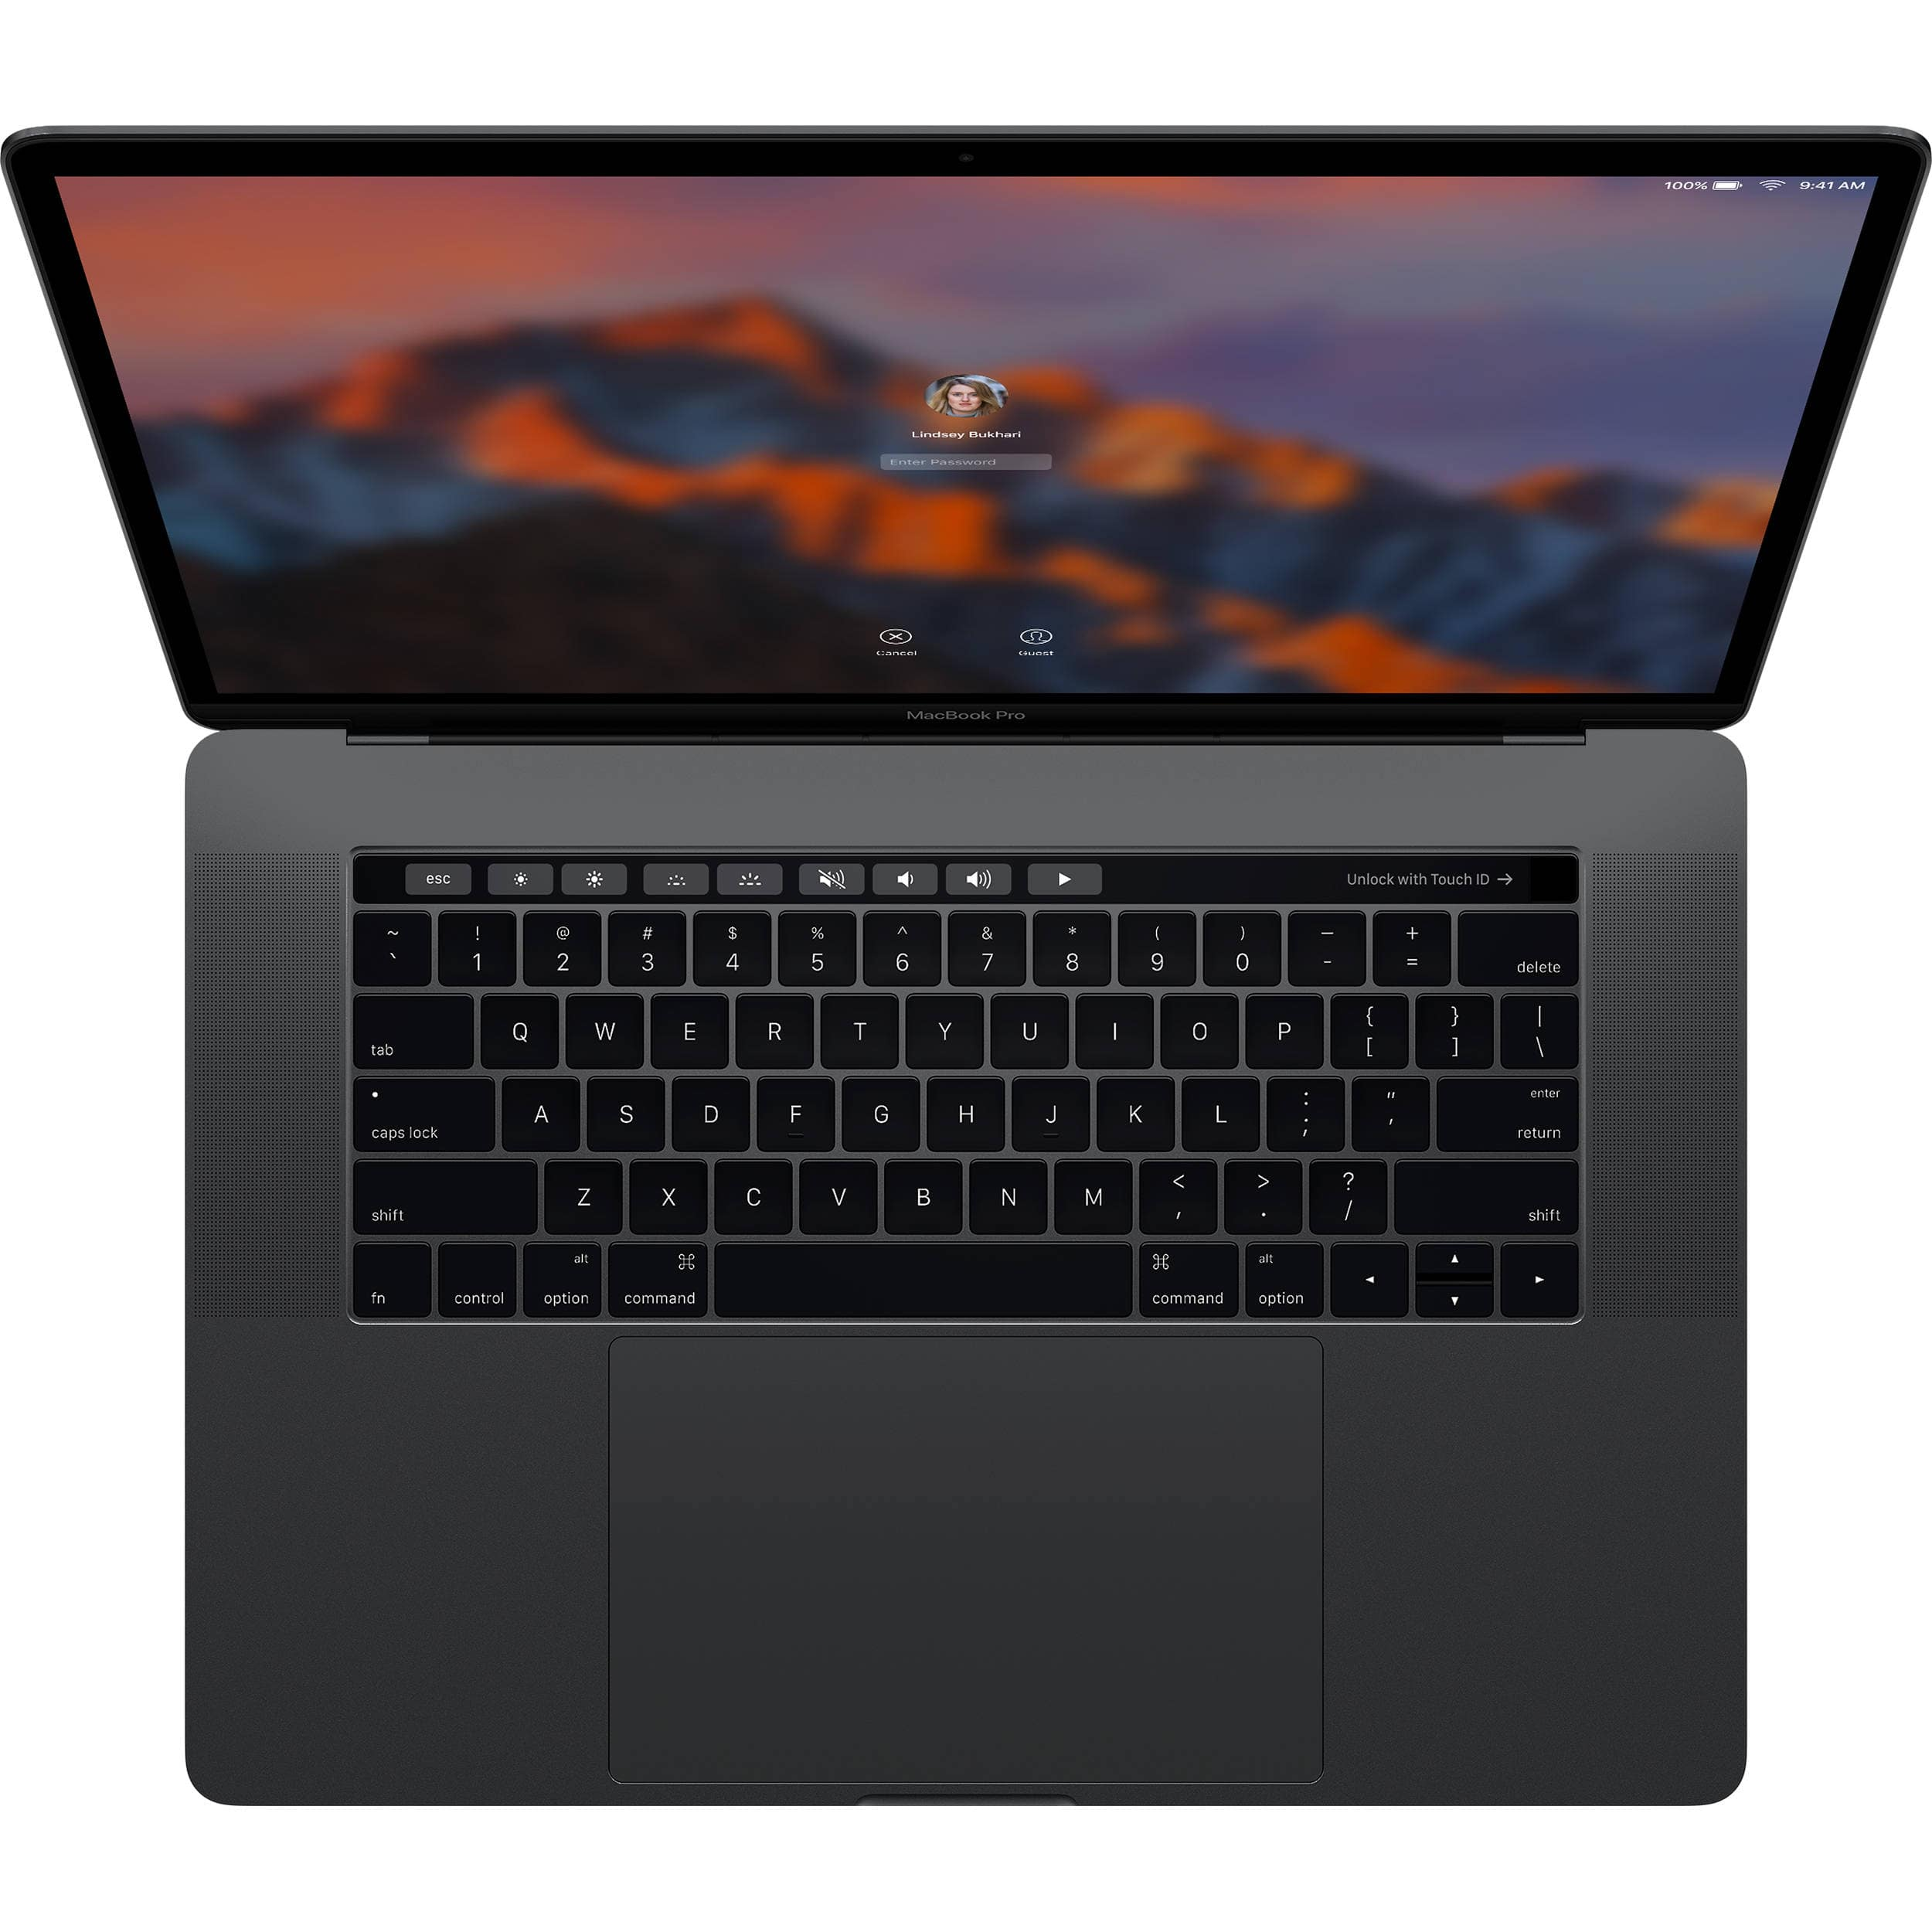 """Apple 15"""" MacBook Pro with Touch Bar for $1,799 ($600 off) with no tax in 48 states"""